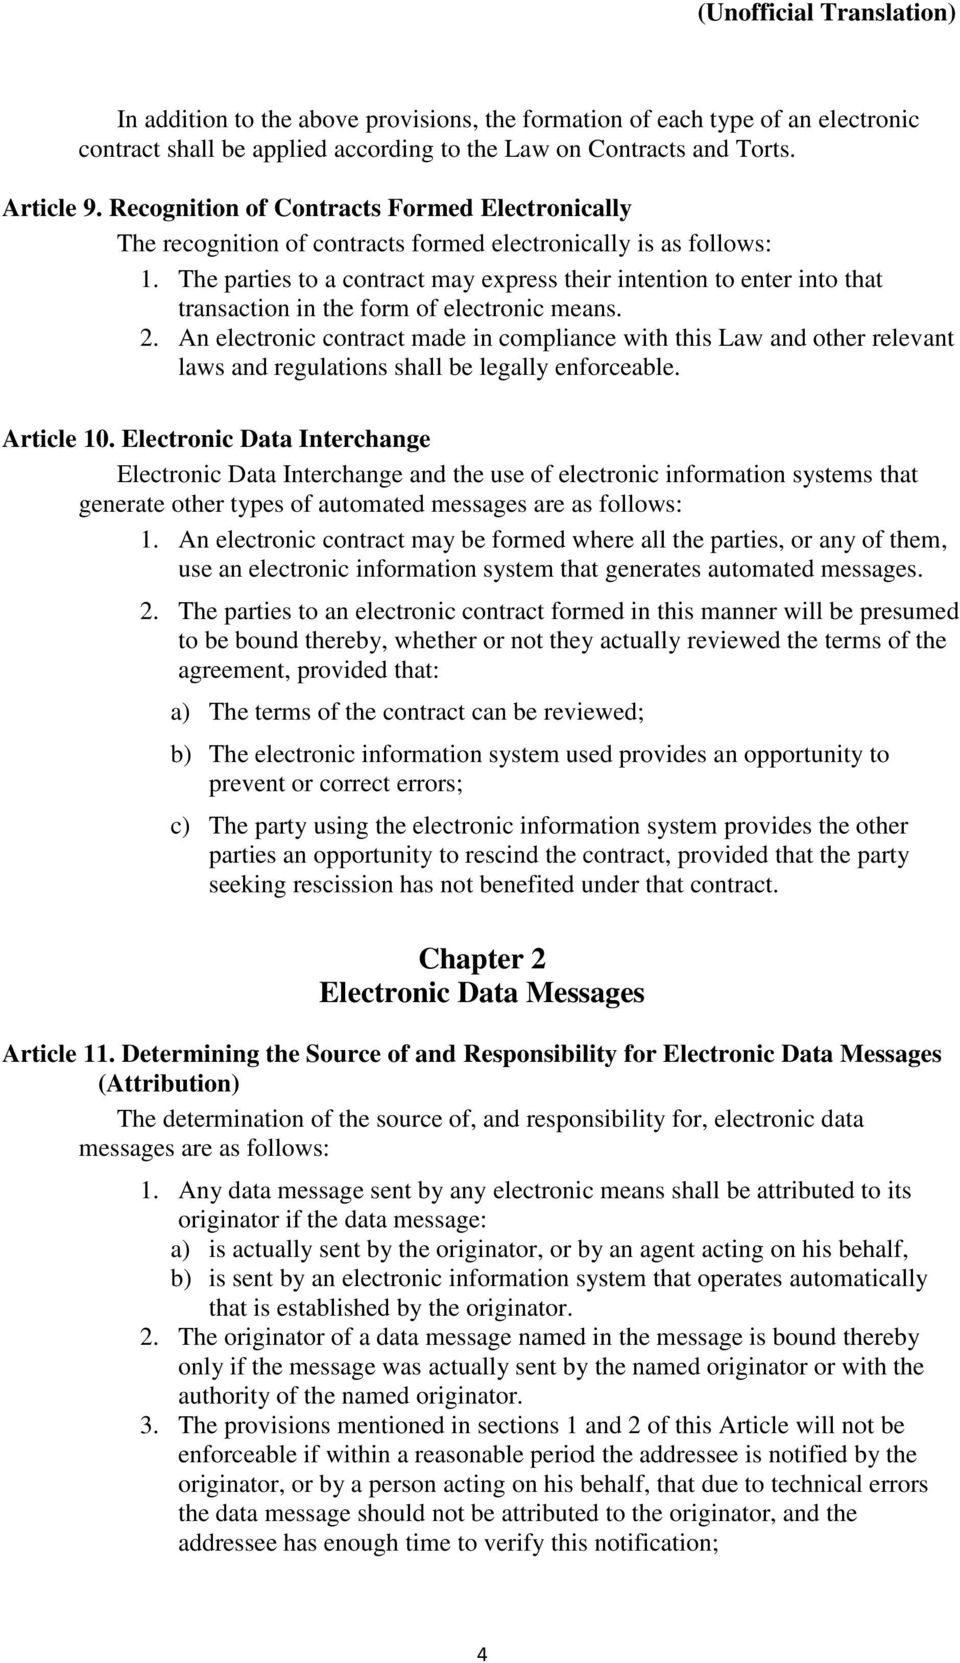 The parties to a contract may express their intention to enter into that transaction in the form of electronic means. 2.